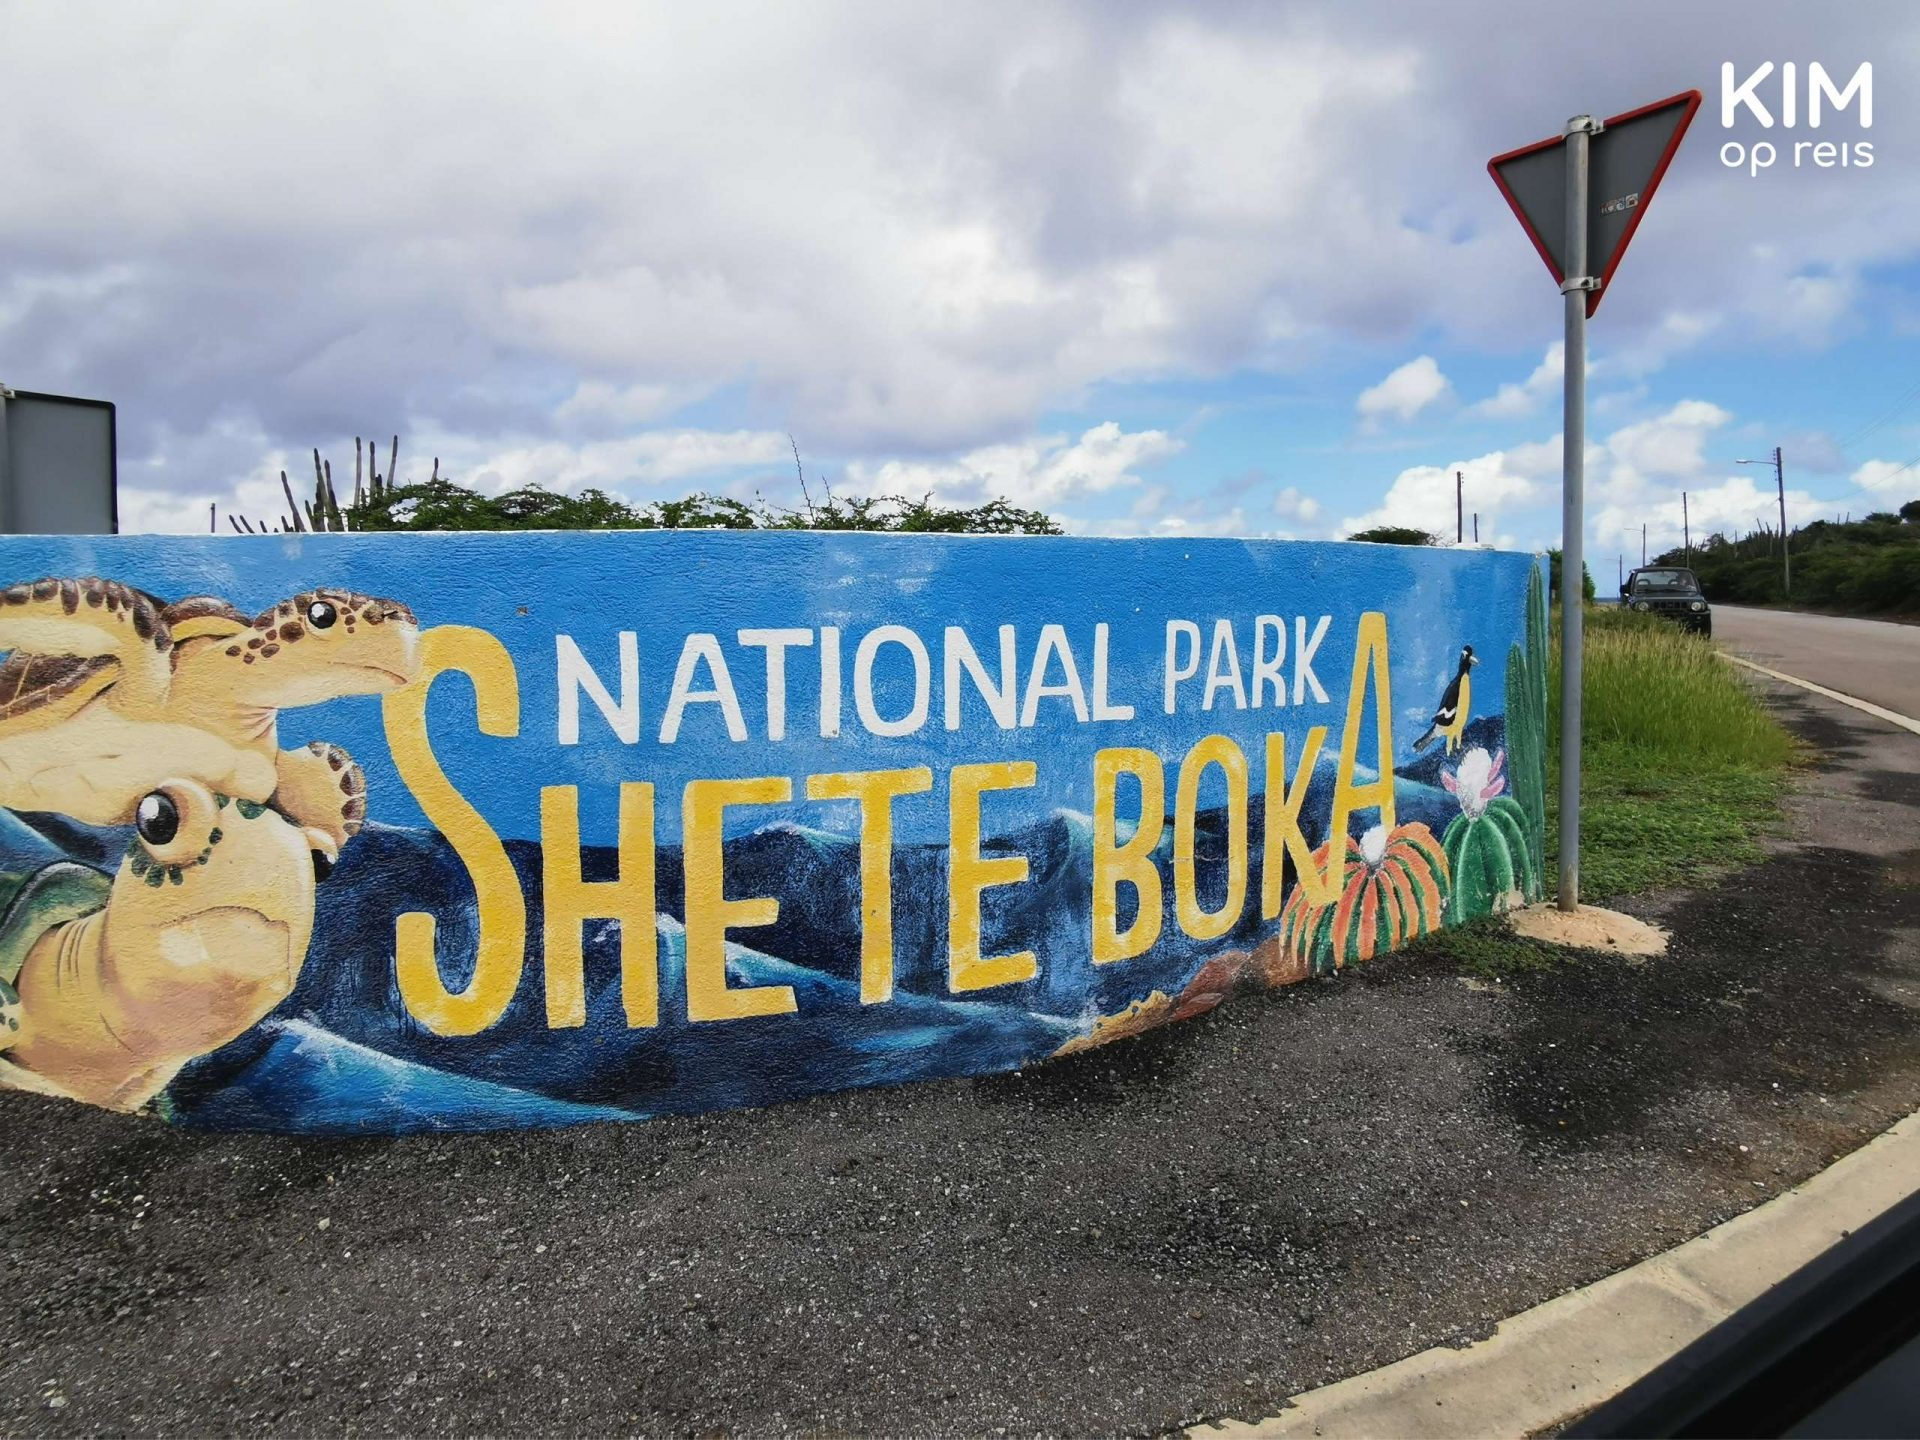 Entrance National Park Shete Boka: a painted wall with the name of the park and turtles on it